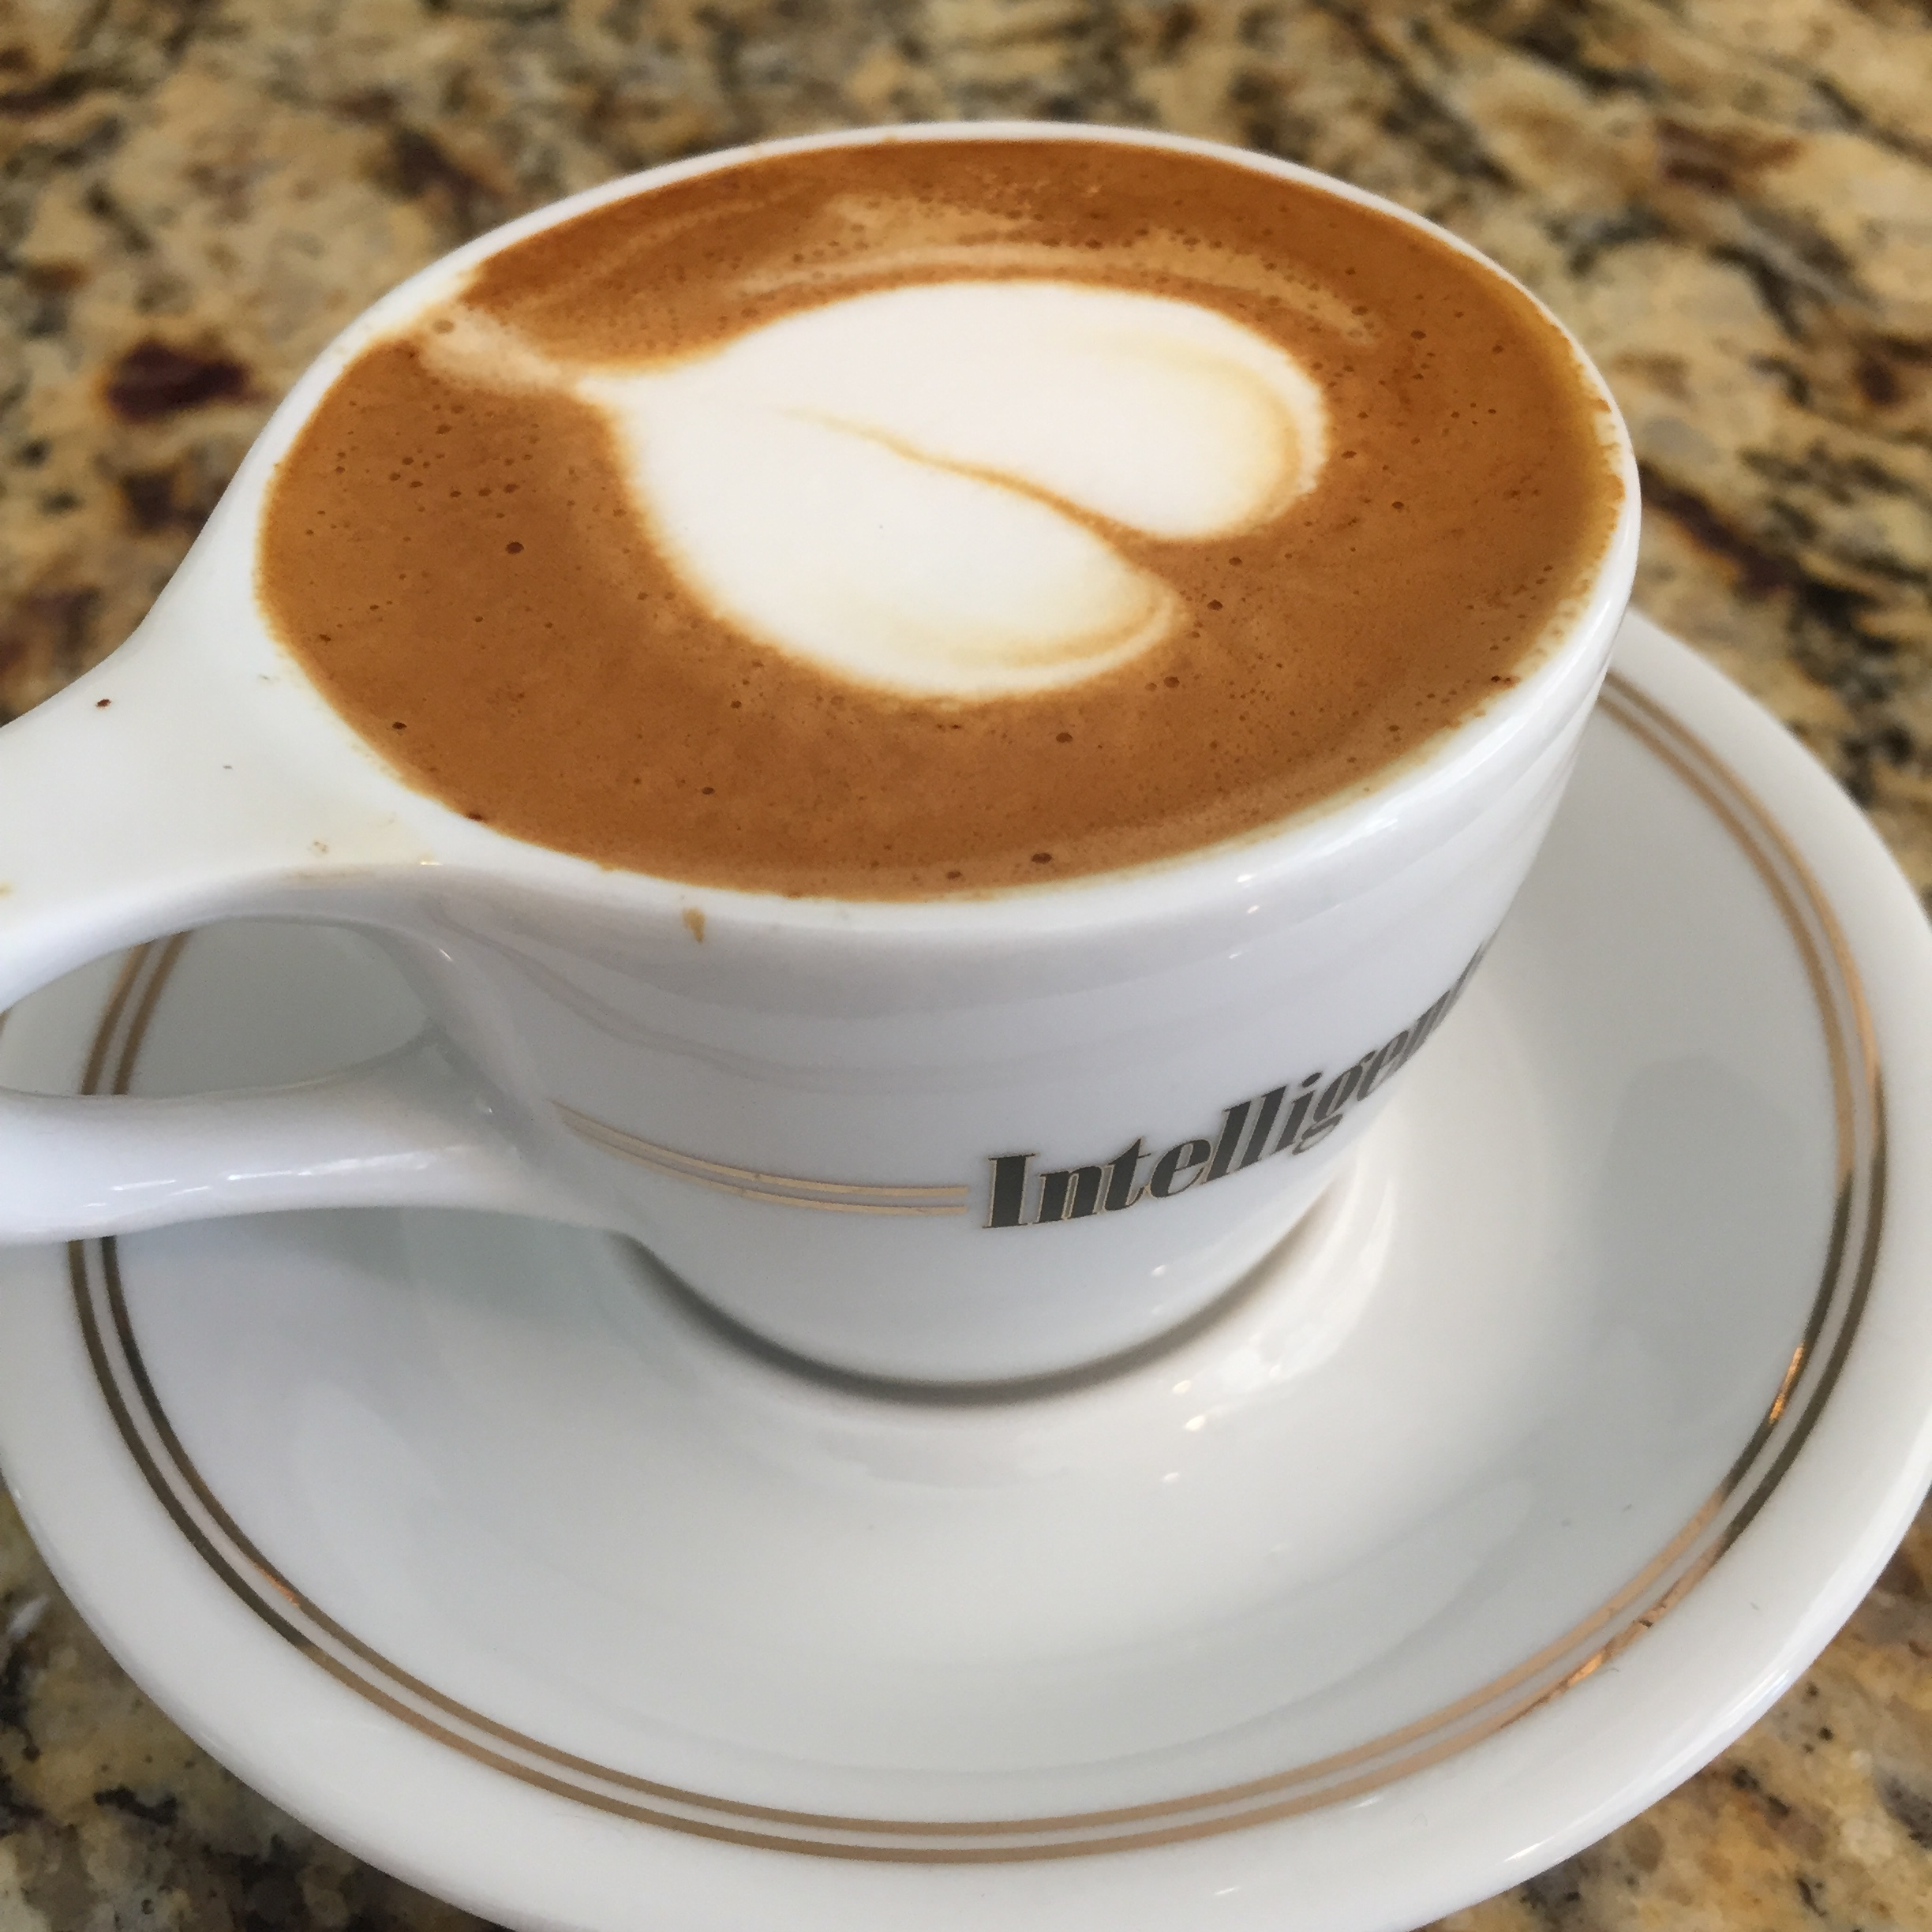 Great espresso, great cups!